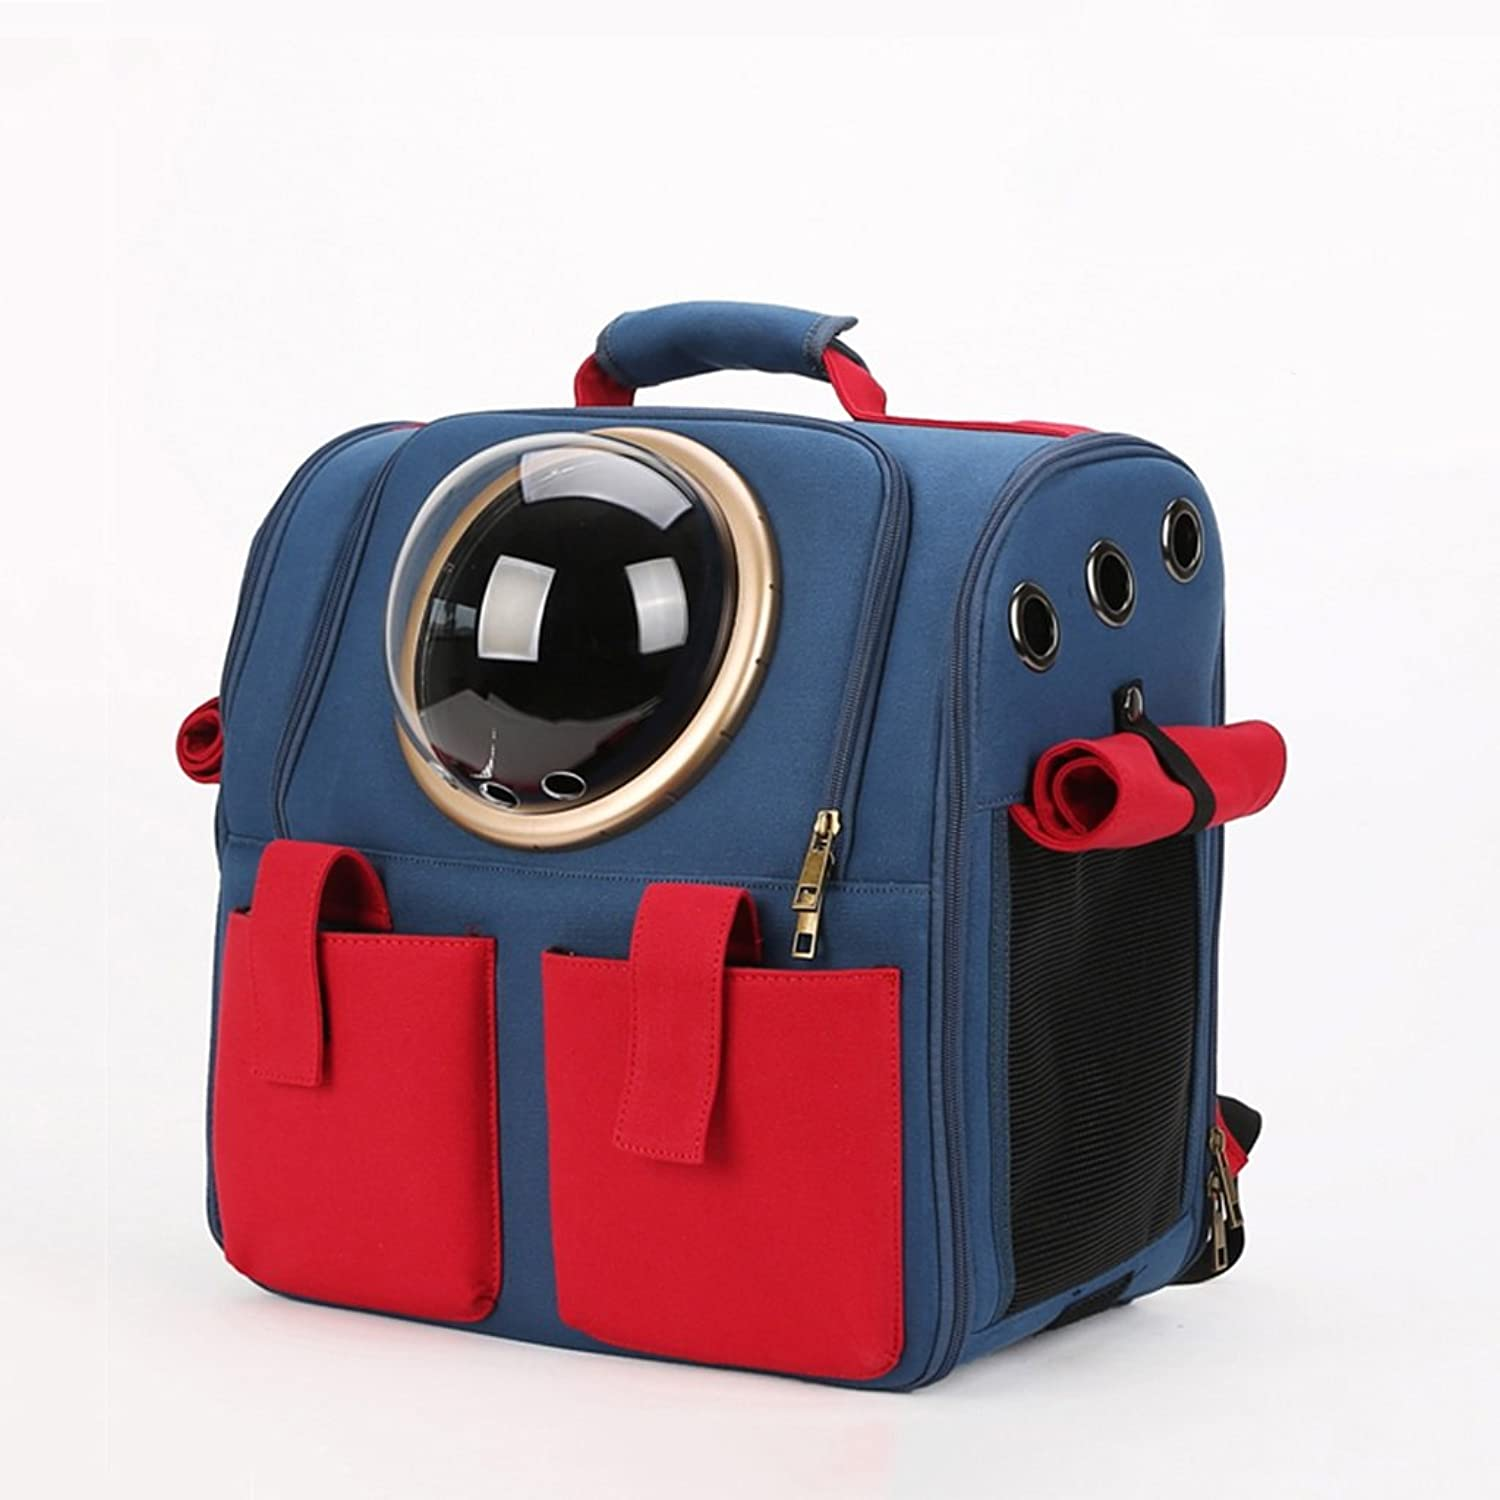 Backpacks Cat Out of The Bag Dog cage Space Capsule pet Bag cat Bag cat Backpack Dog Bag Out of The Box Portable Backpack Carriers (color   bluee and Red, Size   38  26  38cm)